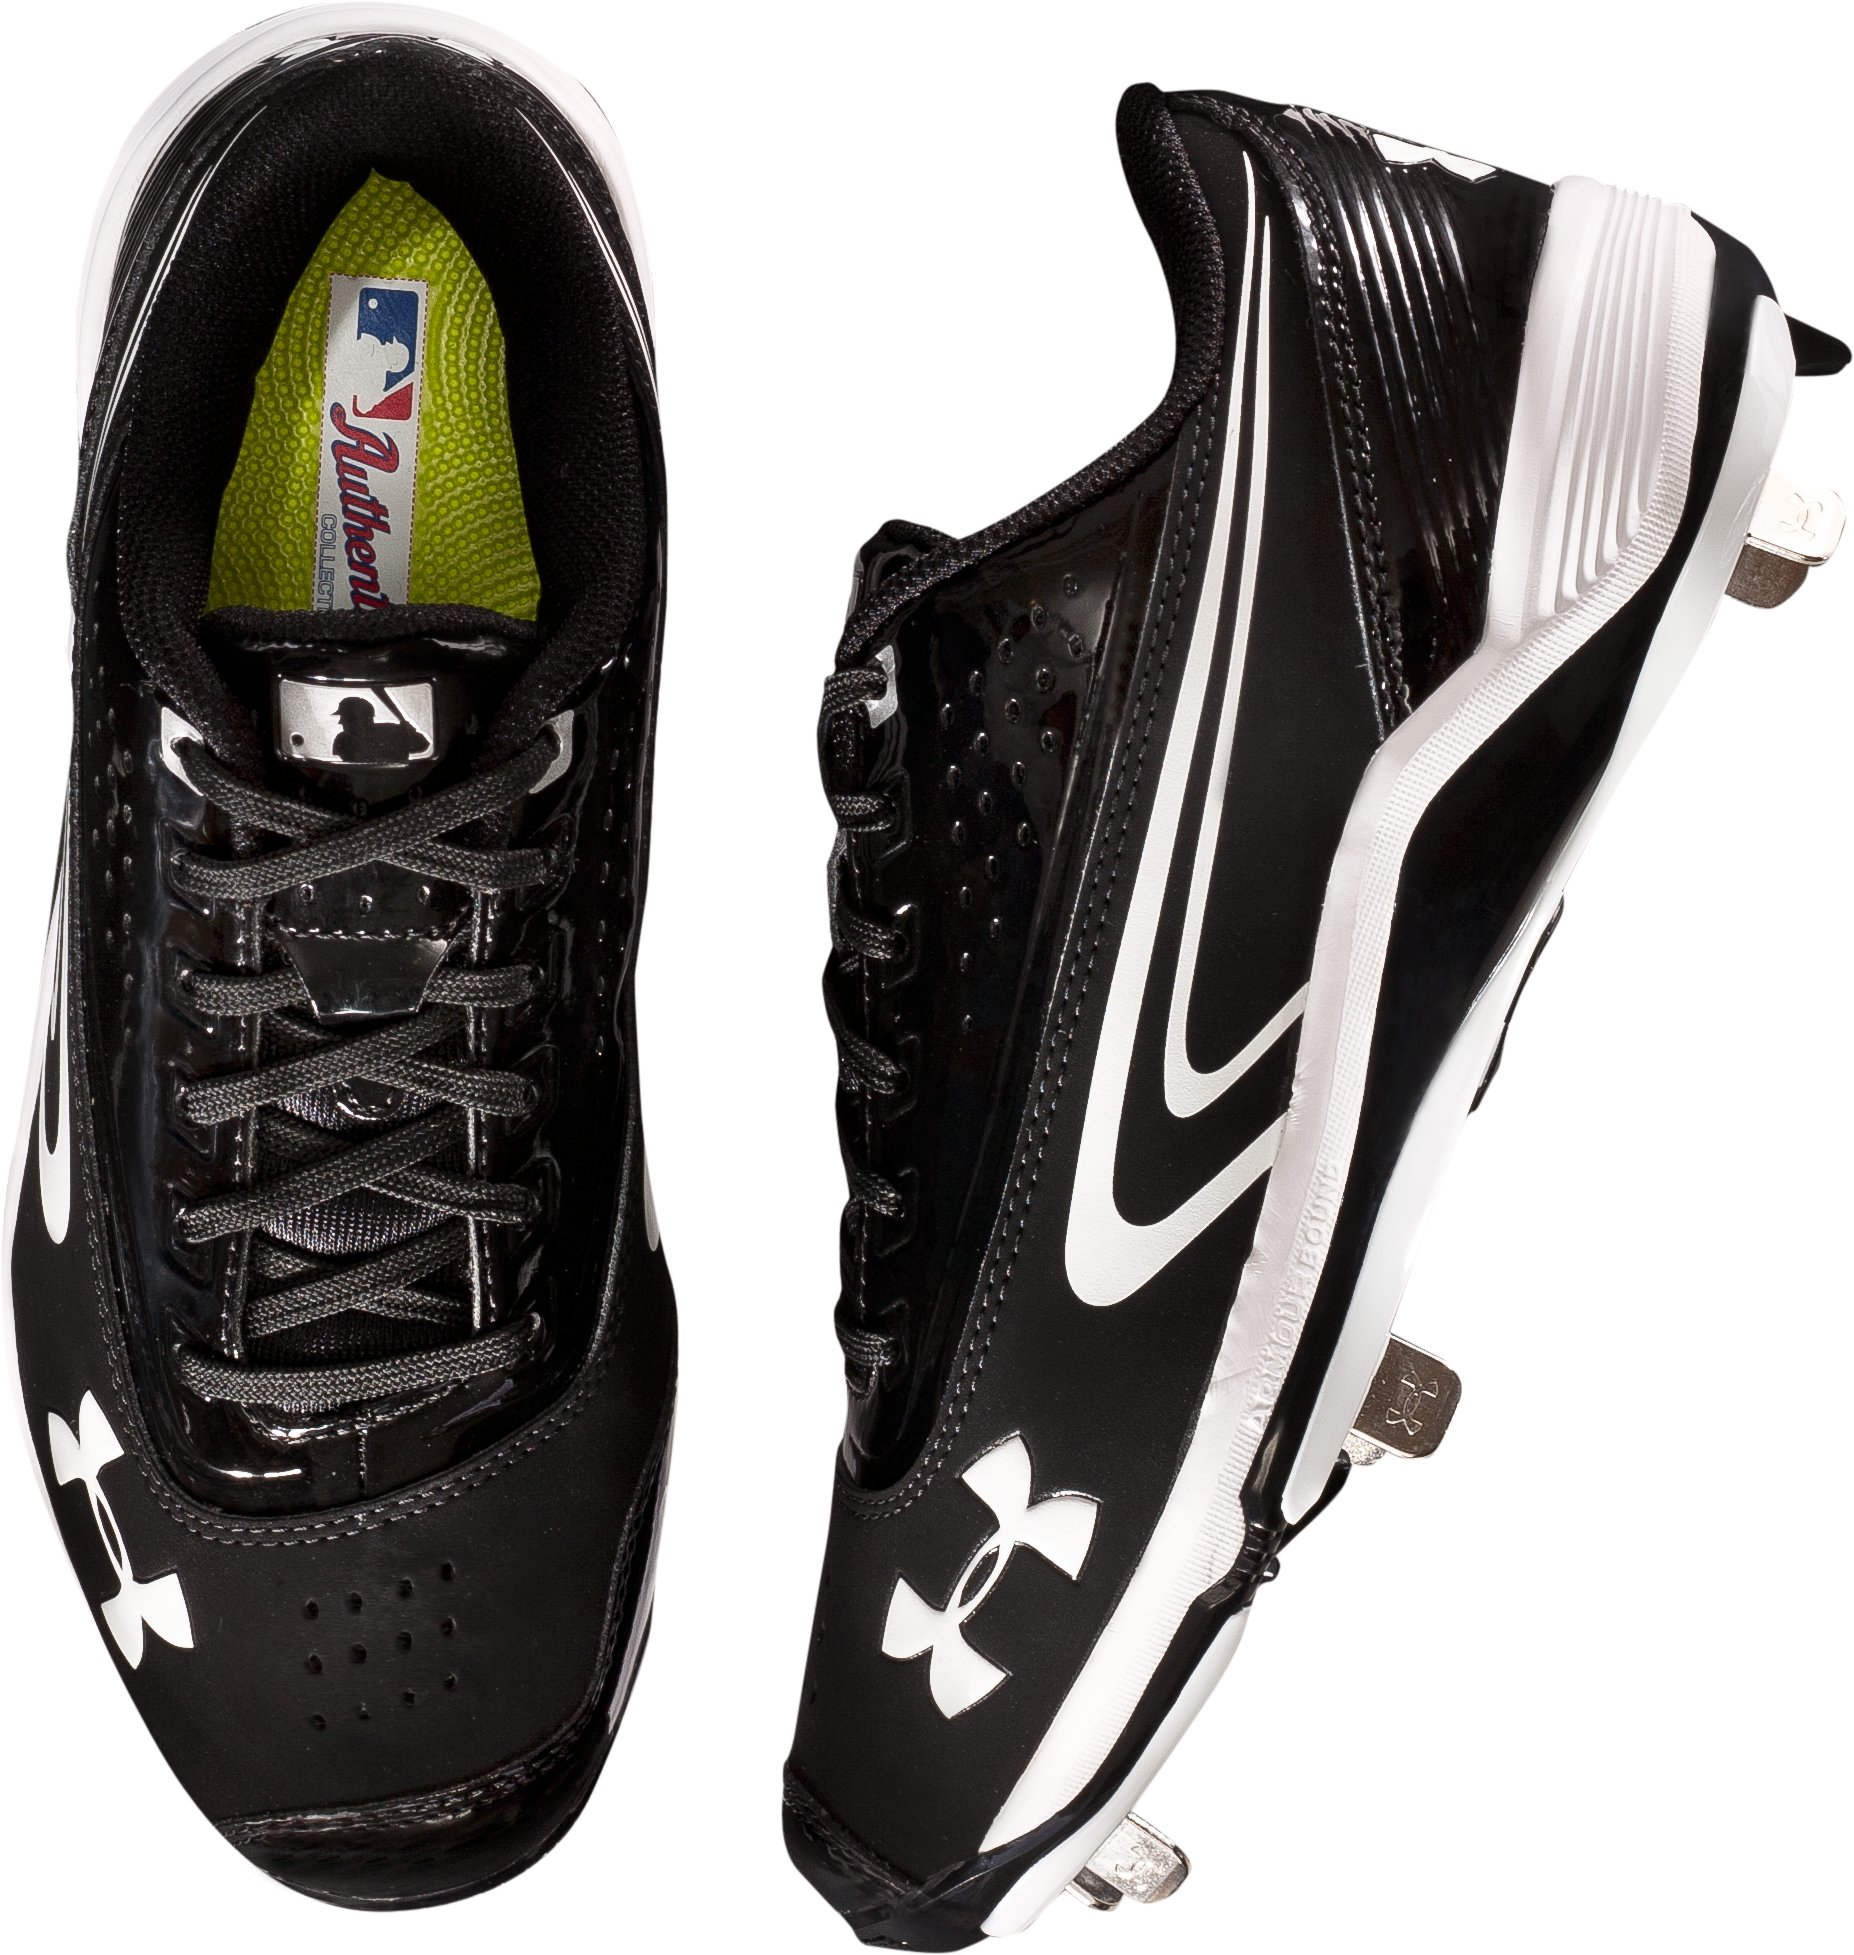 Men's UA Ignite III Low-Cut Metal Baseball cleats, Black